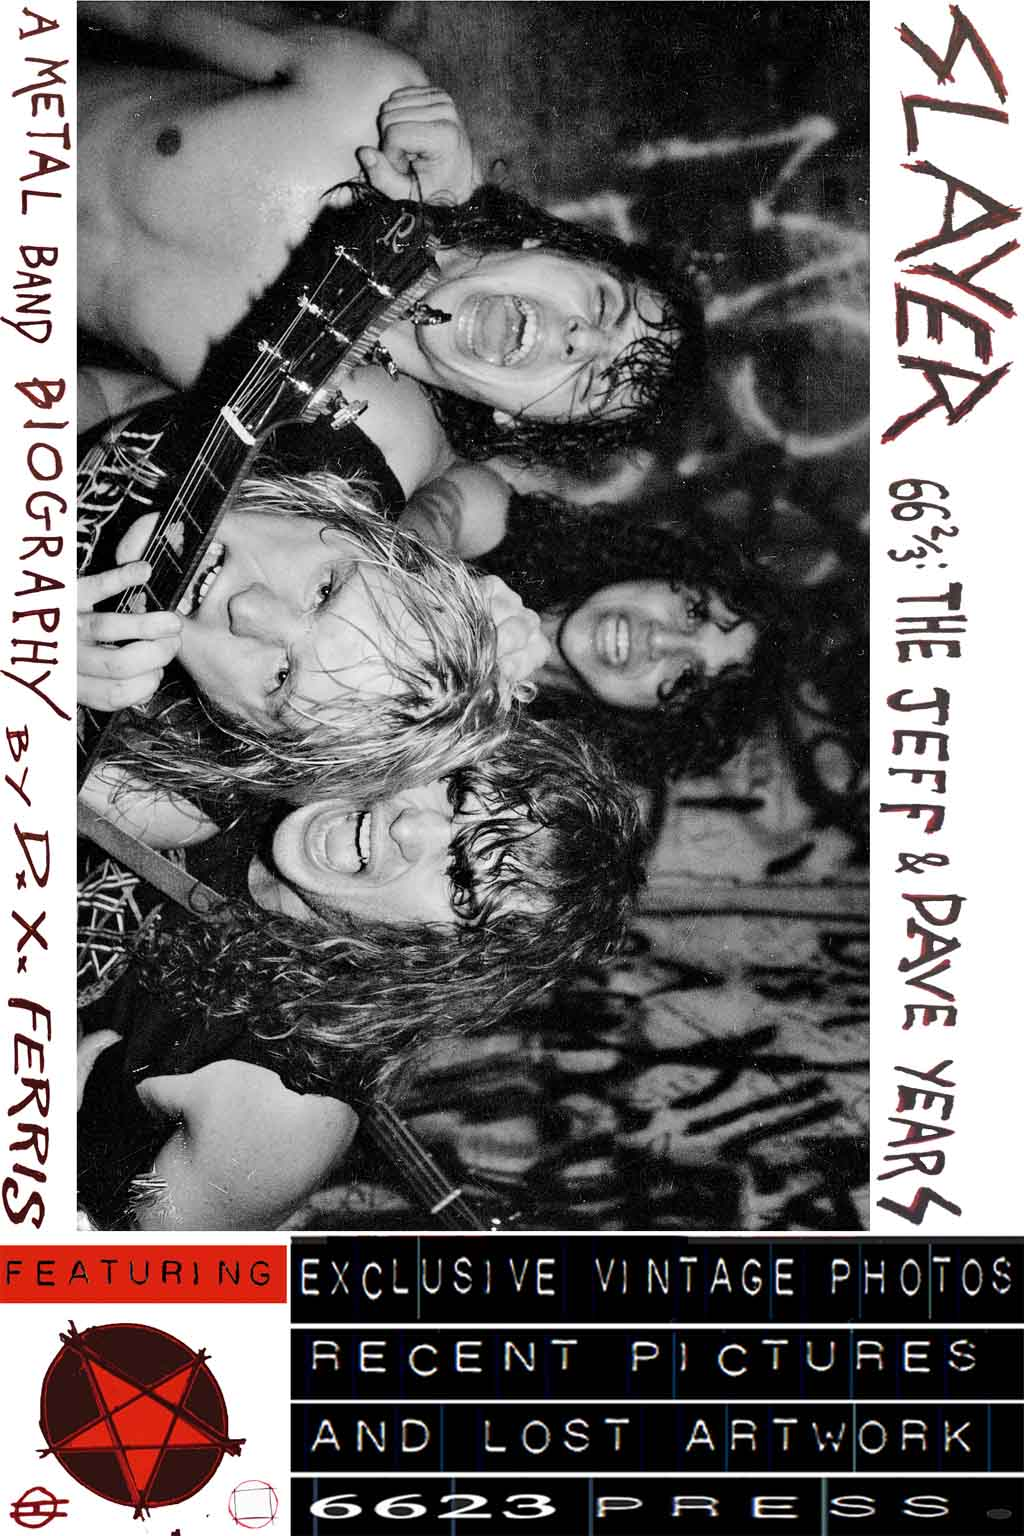 Slayer 66 2/3: The Jeff & Dave Years. A Metal Band Biography by D.X. Ferris